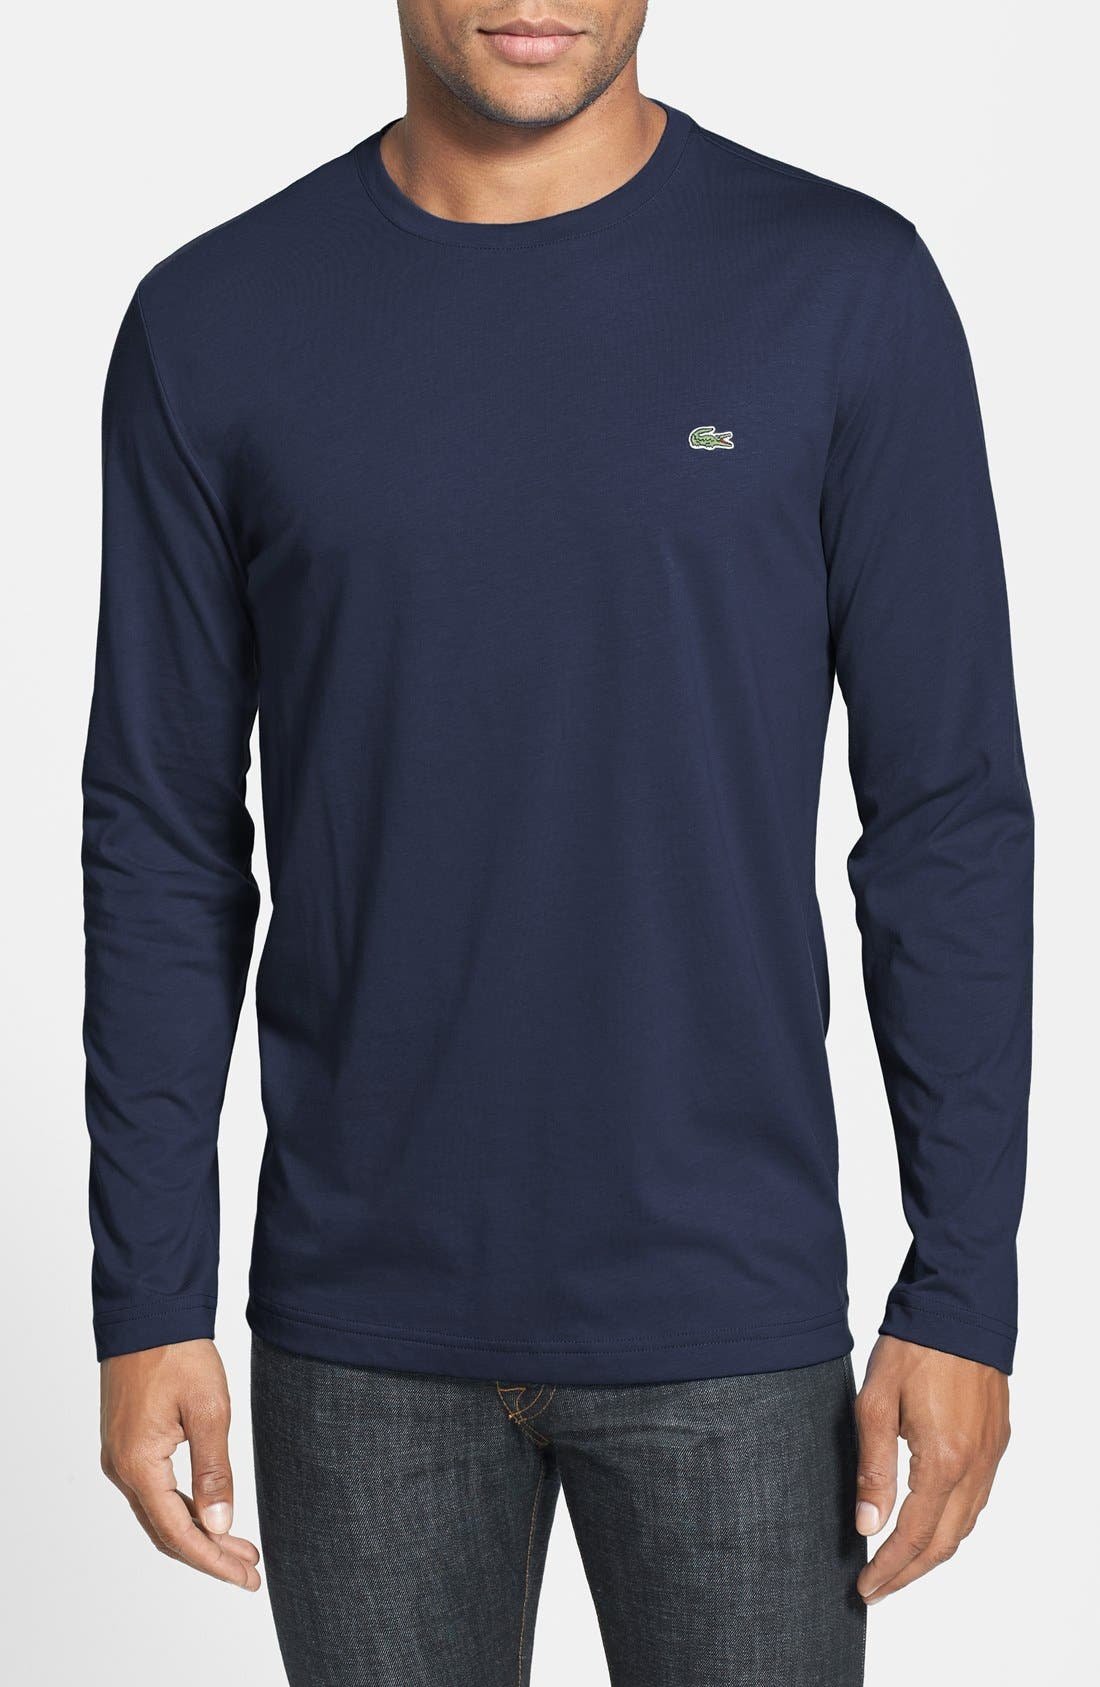 Alternate Image 1 Selected - Lacoste Long Sleeve Pima Cotton T-Shirt